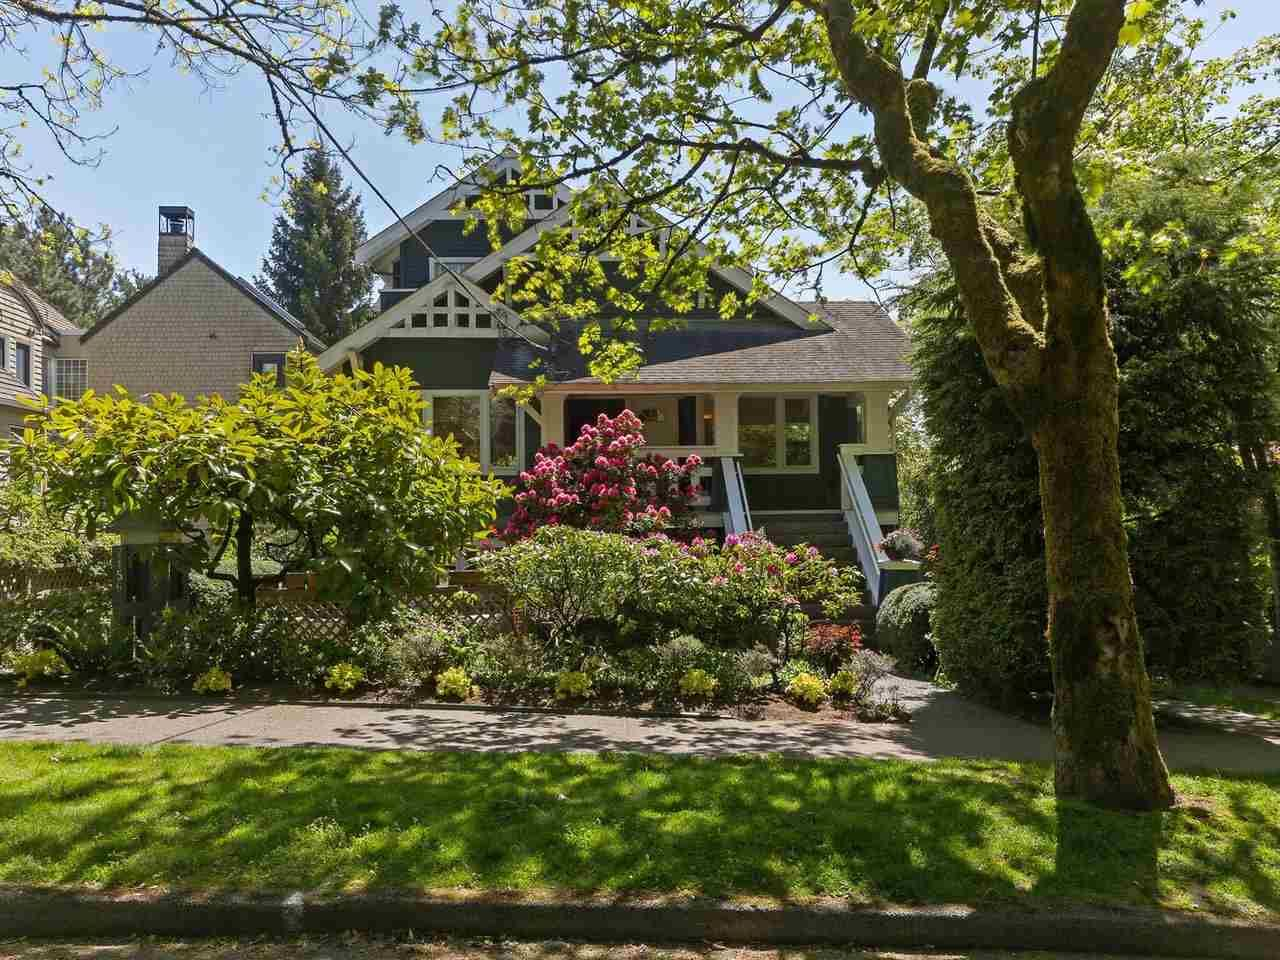 Main Photo: 2460 W 6TH Avenue in Vancouver: Kitsilano Townhouse for sale (Vancouver West)  : MLS®# R2370781